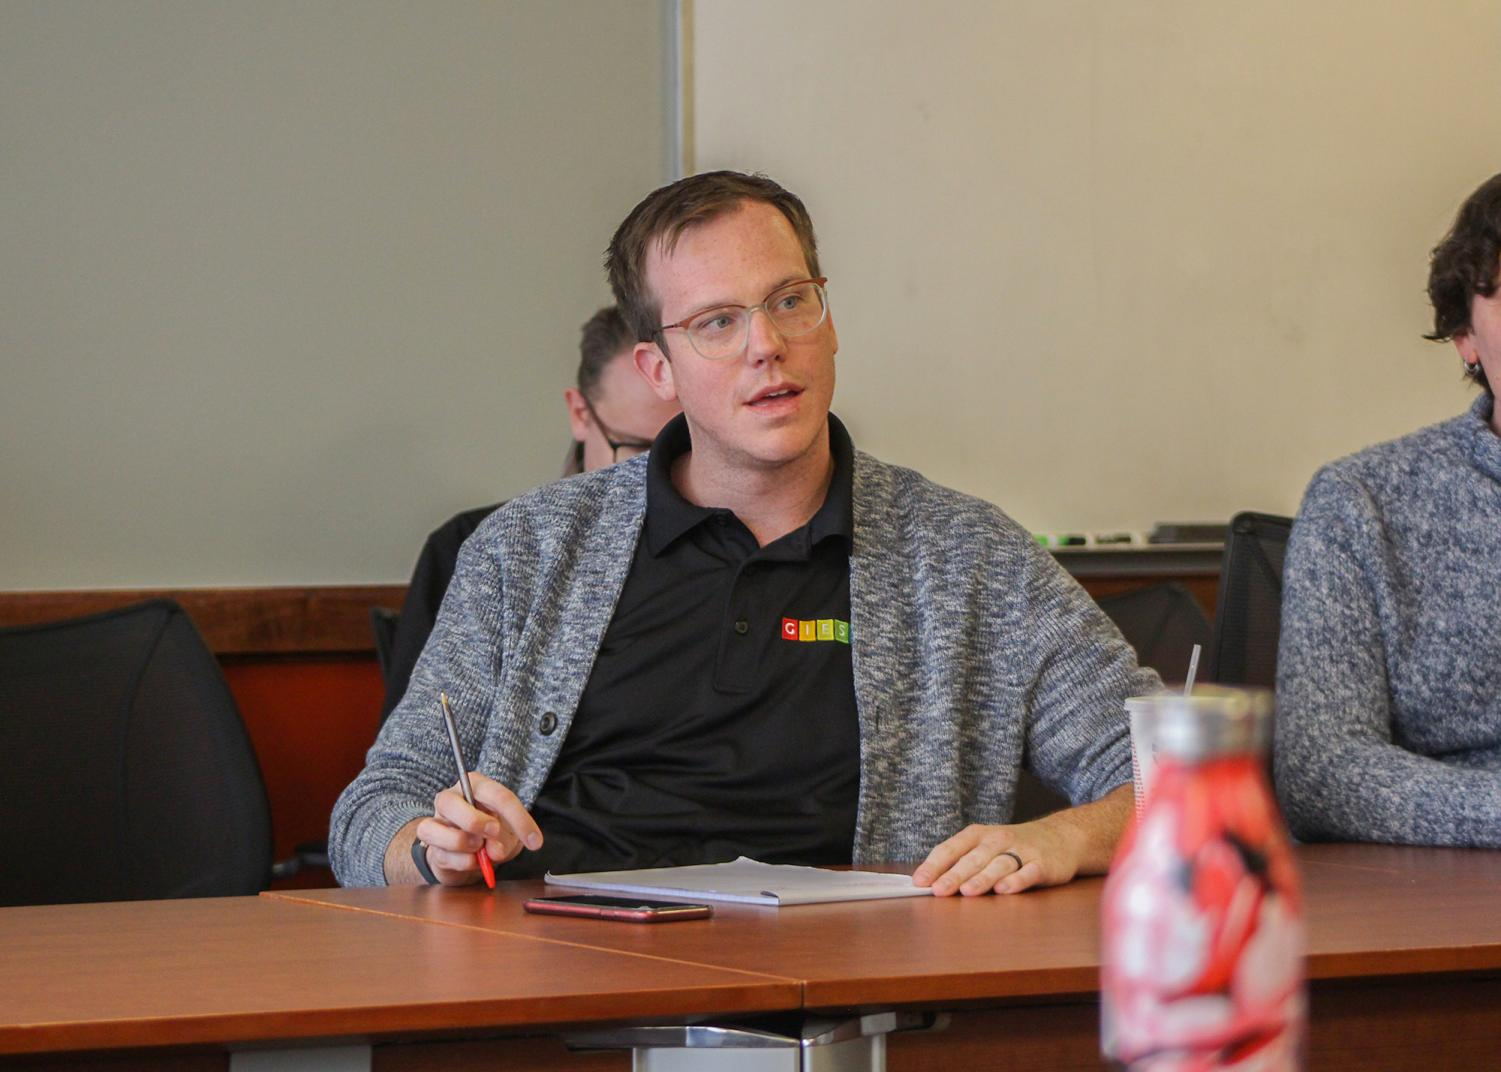 Matthew Jeffries, director of the gender identity/expression and sexual identity resource center at WSU, speaking at the first inaugural LGBTQ+ faculty/staff association meeting on Oct. 18 in the CUB.